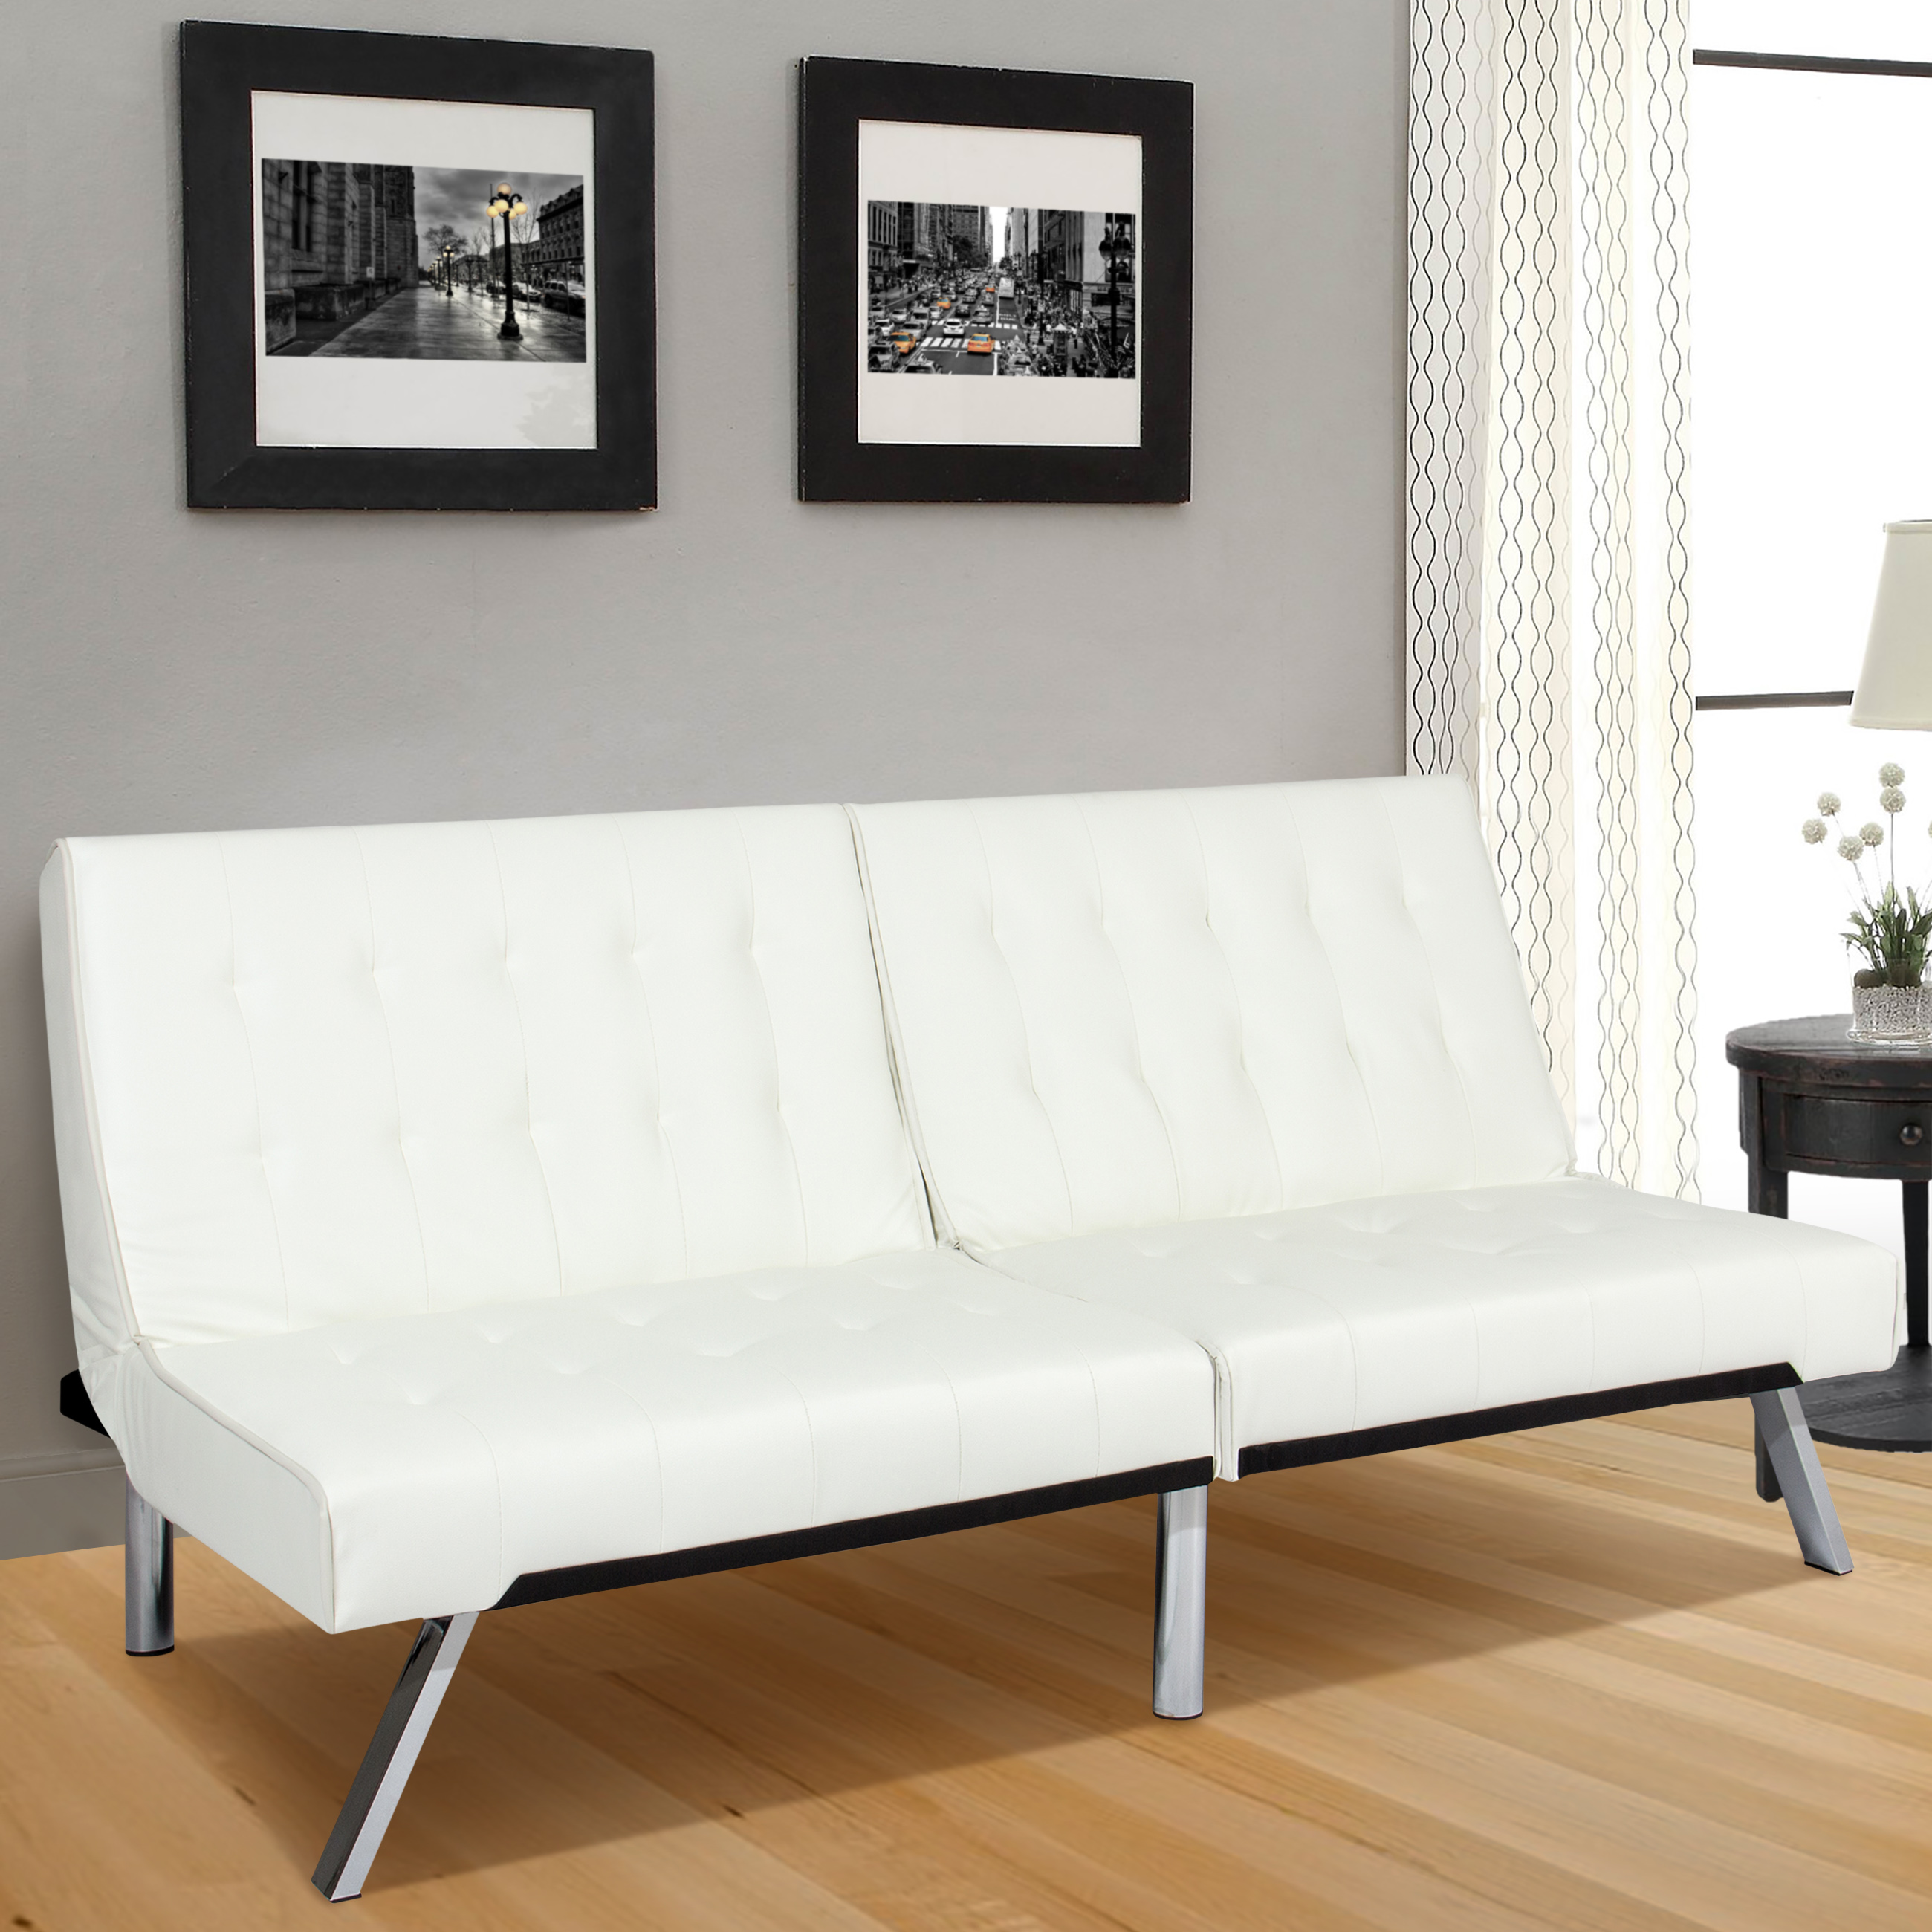 Best Choice Products Modern Leather Futon Sofa Bed Fold Up & Down